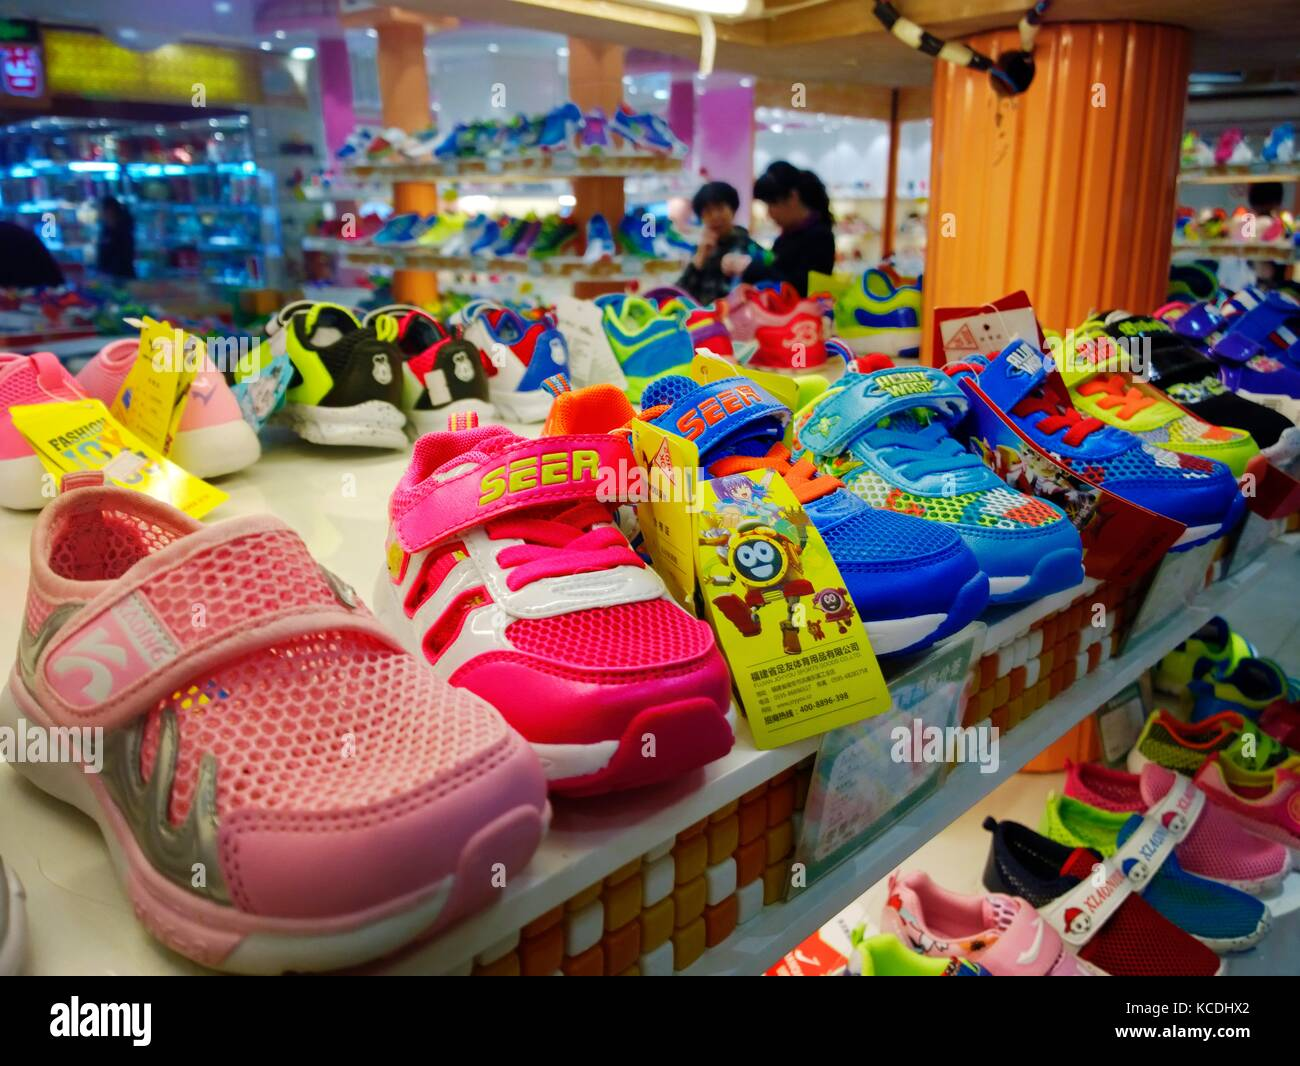 66591dcdd49ac5 Colourful childrens infants plastic shoes trainers on display in shoe store  shop in the Chinese city